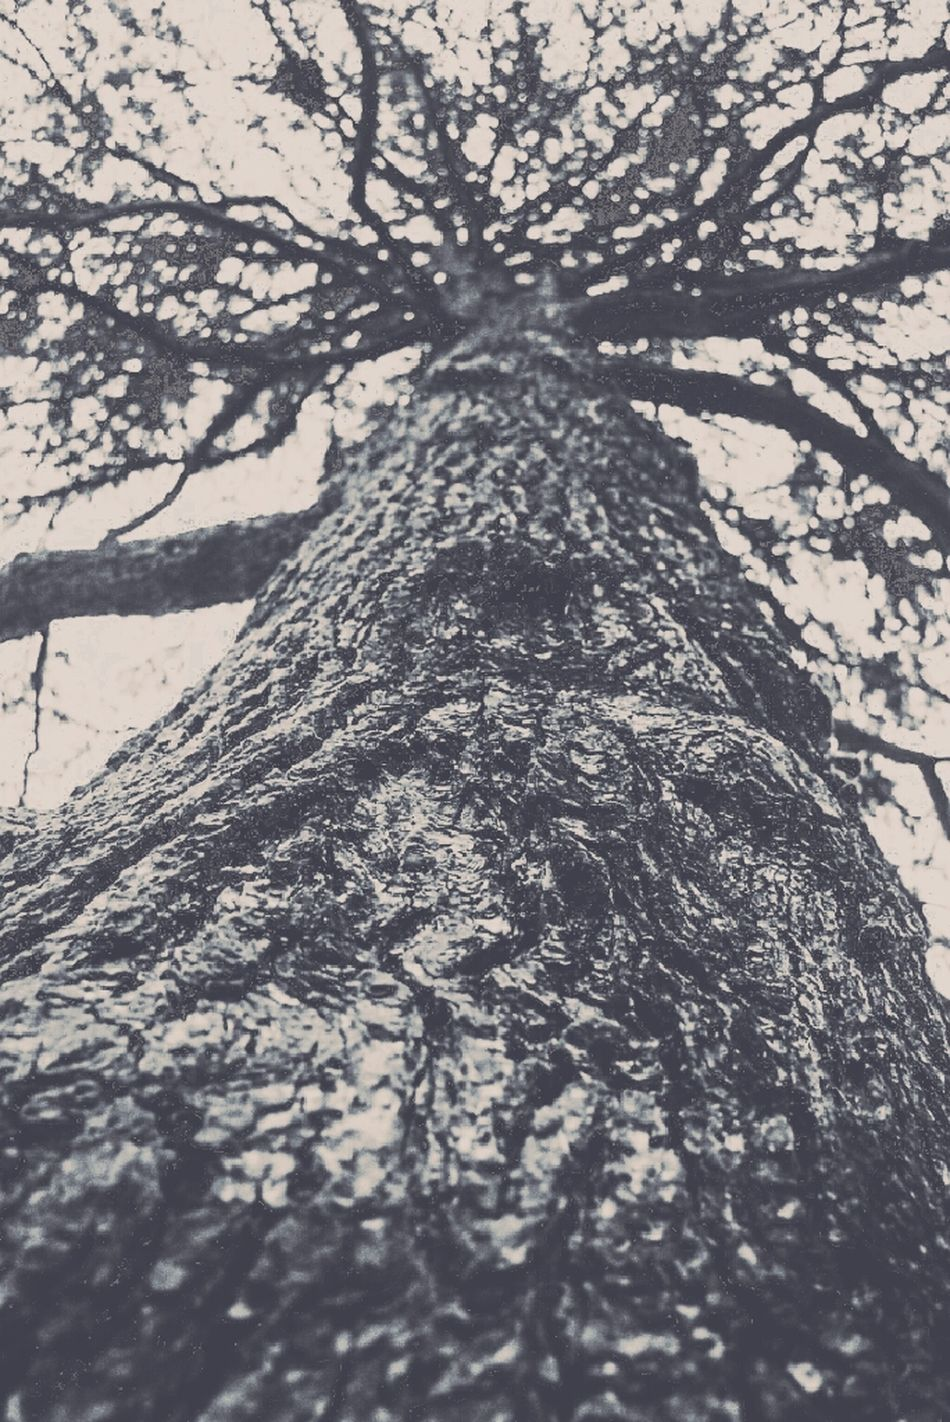 Took this at Bradgate Park, Leicester. Taken with my Nikon F60. Close Up Tree Vintage Photo NikonF60